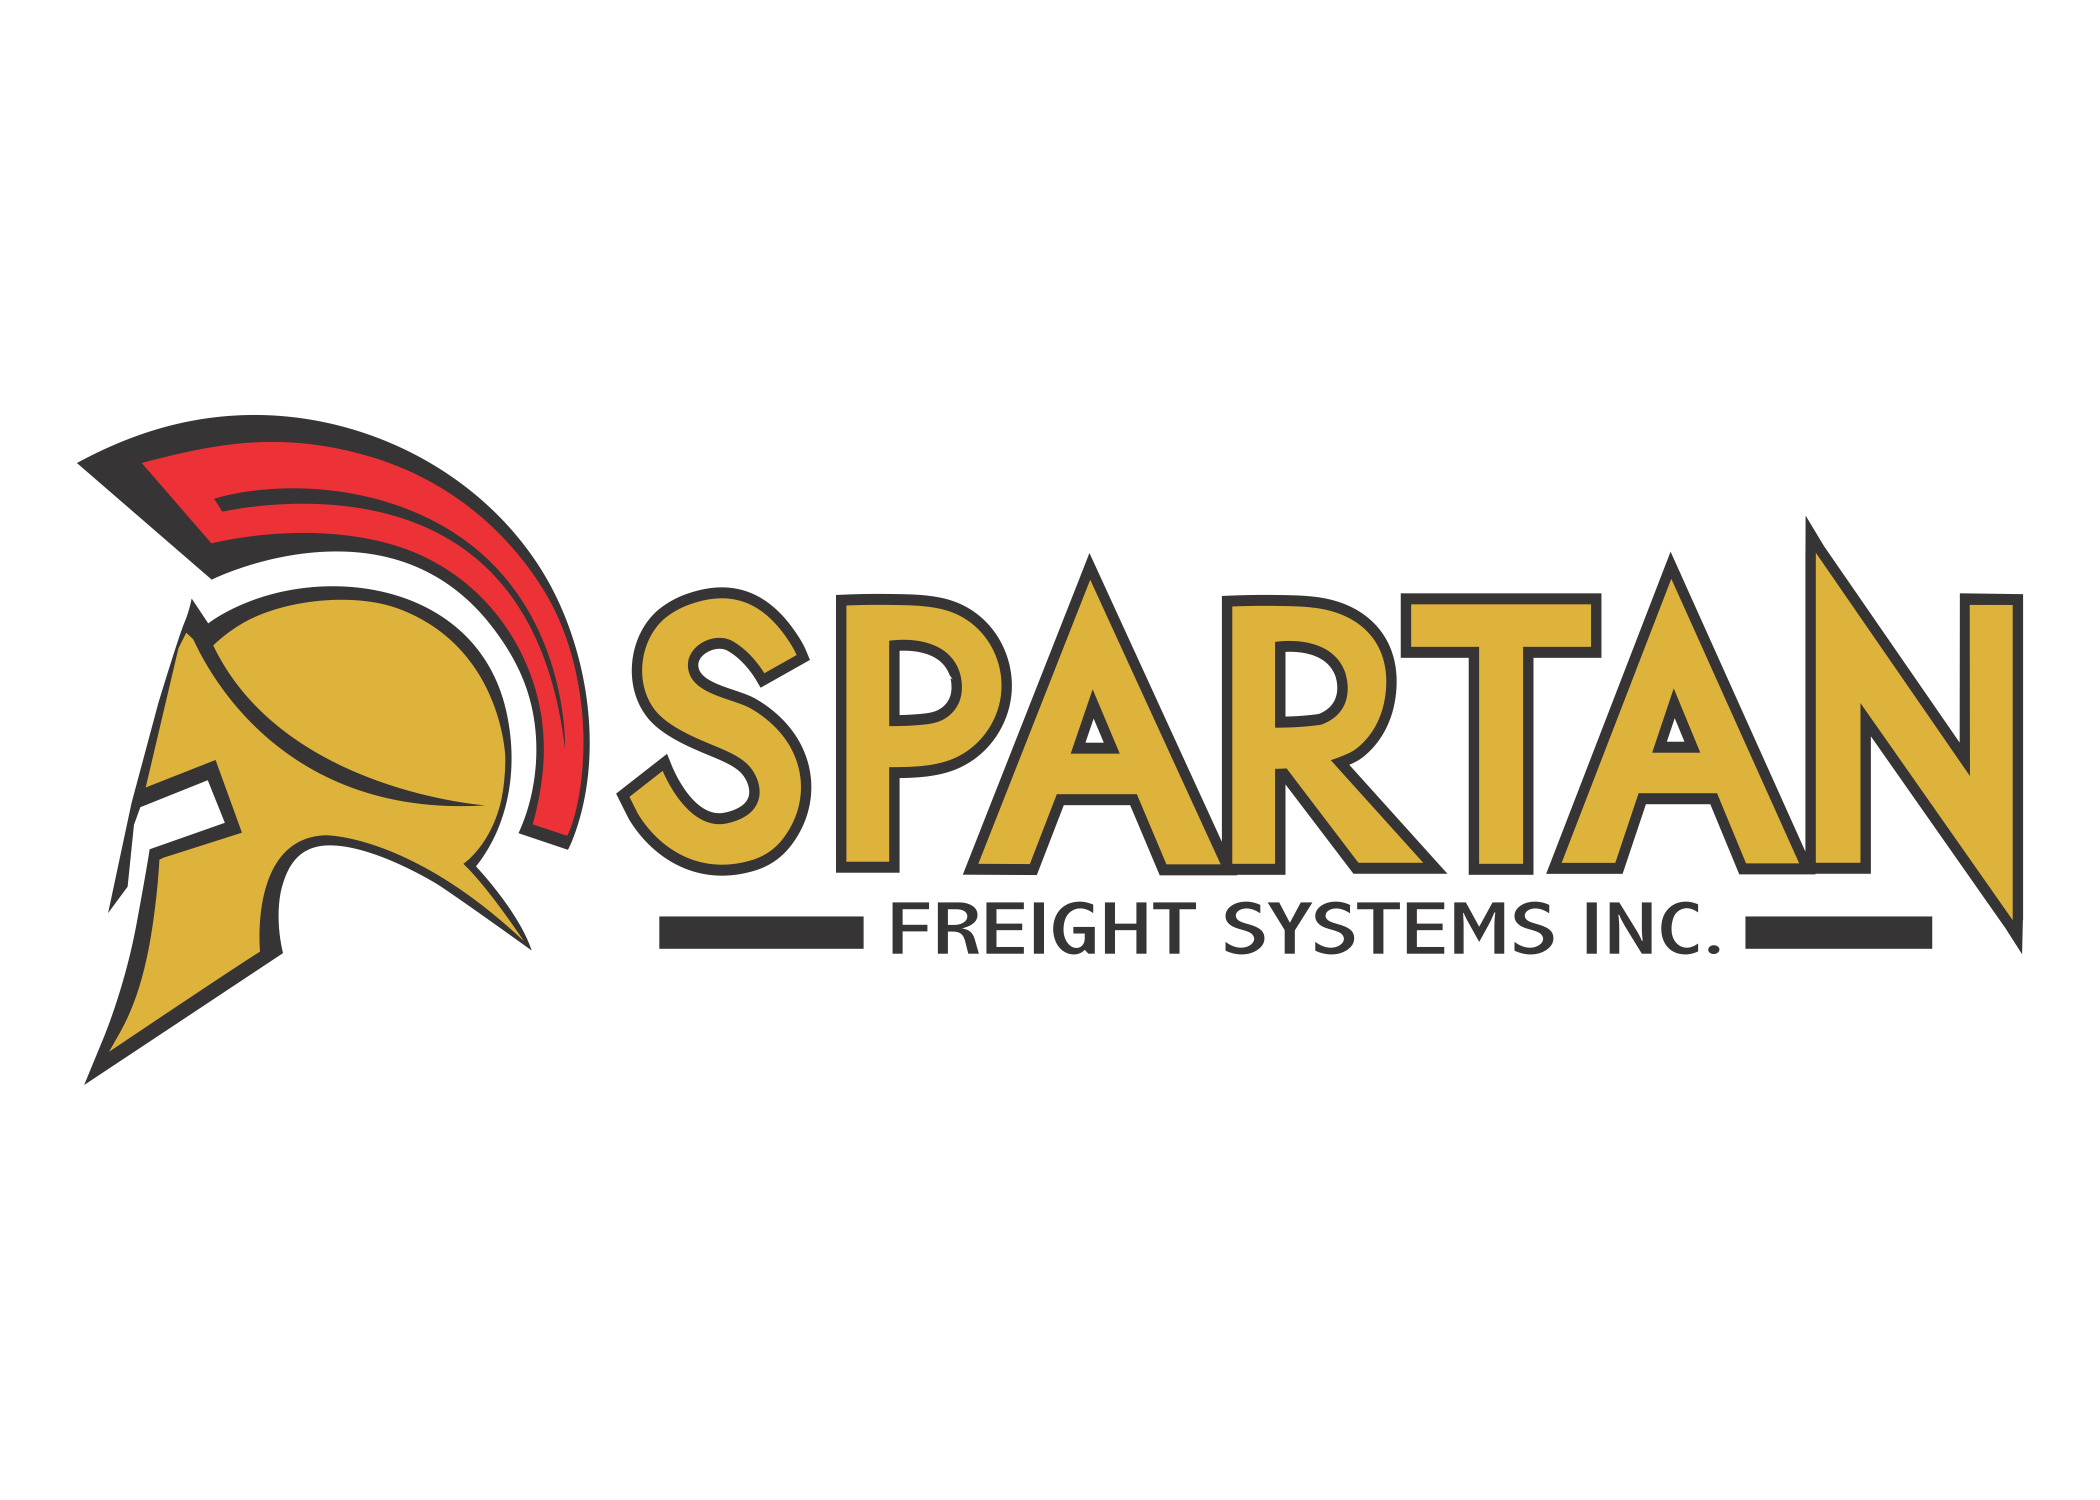 logo image of Spartan Freight Systems